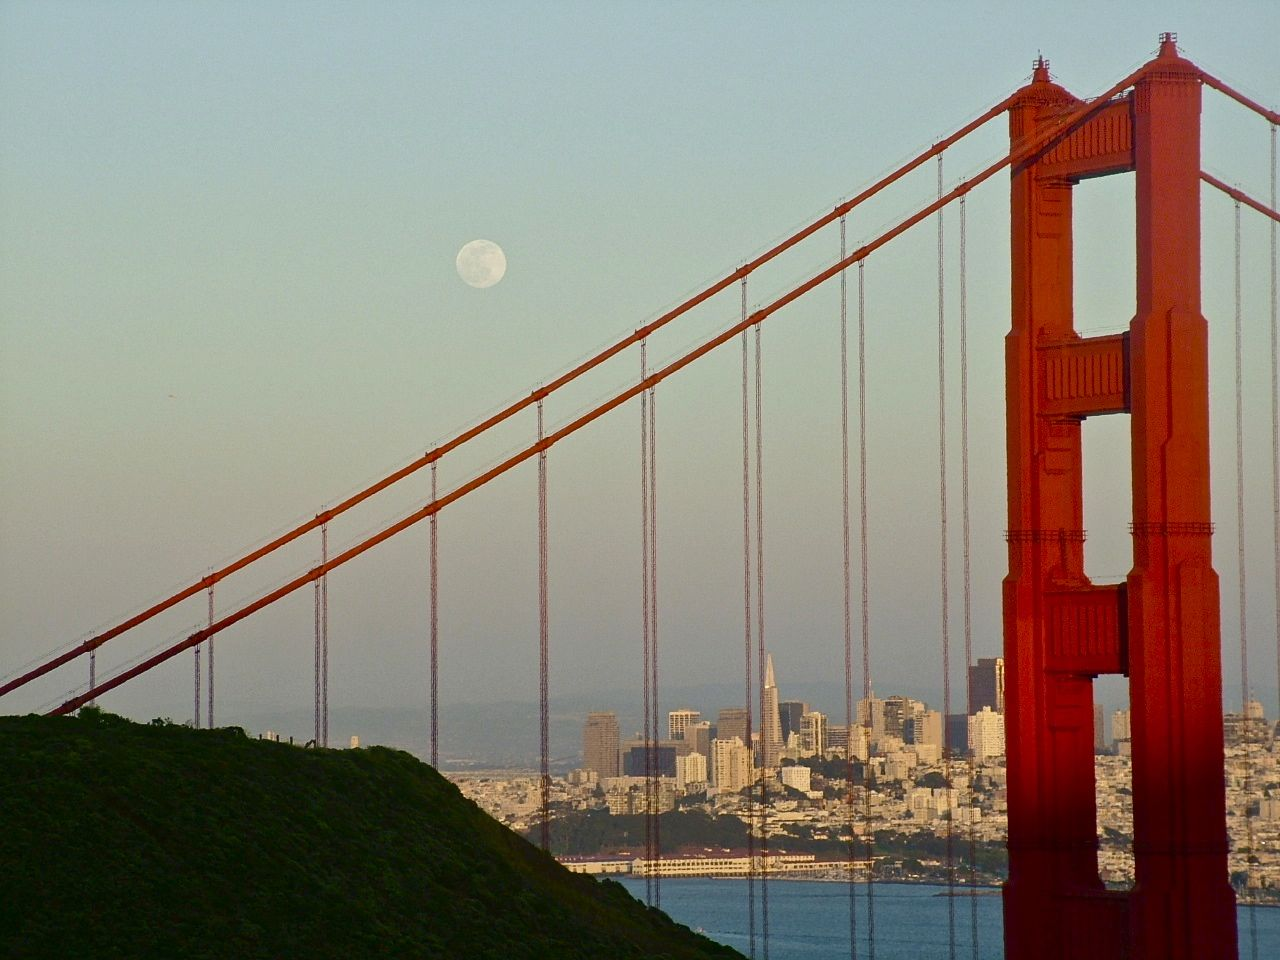 Backpackers guide to san francisco a travellers footsteps for Golden gate bridge jewelry